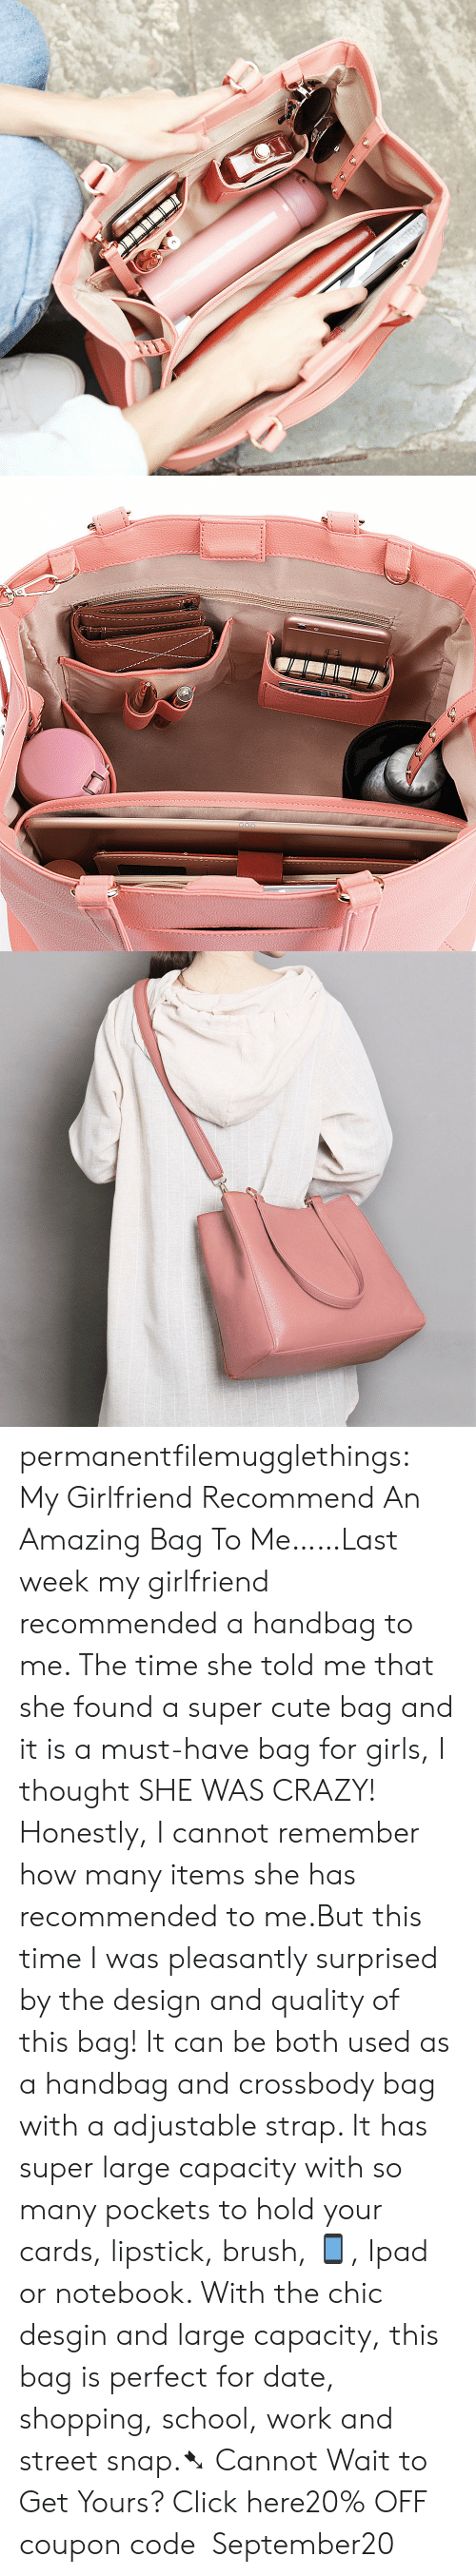 handbag: permanentfilemugglethings:  My Girlfriend Recommend An Amazing Bag To Me……Last week my girlfriend recommended a handbag to me. The time she told me that she found a super cute bag and it is a must-have bag for girls, I thought SHE WAS CRAZY! Honestly, I cannot remember how many items she has recommended to me.But this time I was pleasantly surprised by the design and quality of this bag! It can be both used as a handbag and crossbody bag with a adjustable strap. It has super large capacity with so many pockets to hold your cards, lipstick, brush, ?, Ipad or notebook. With the chic desgin and large capacity, this bag is perfect for date, shopping, school, work and street snap.➷ Cannot Wait to Get Yours? Click here20% OFF coupon code:September20